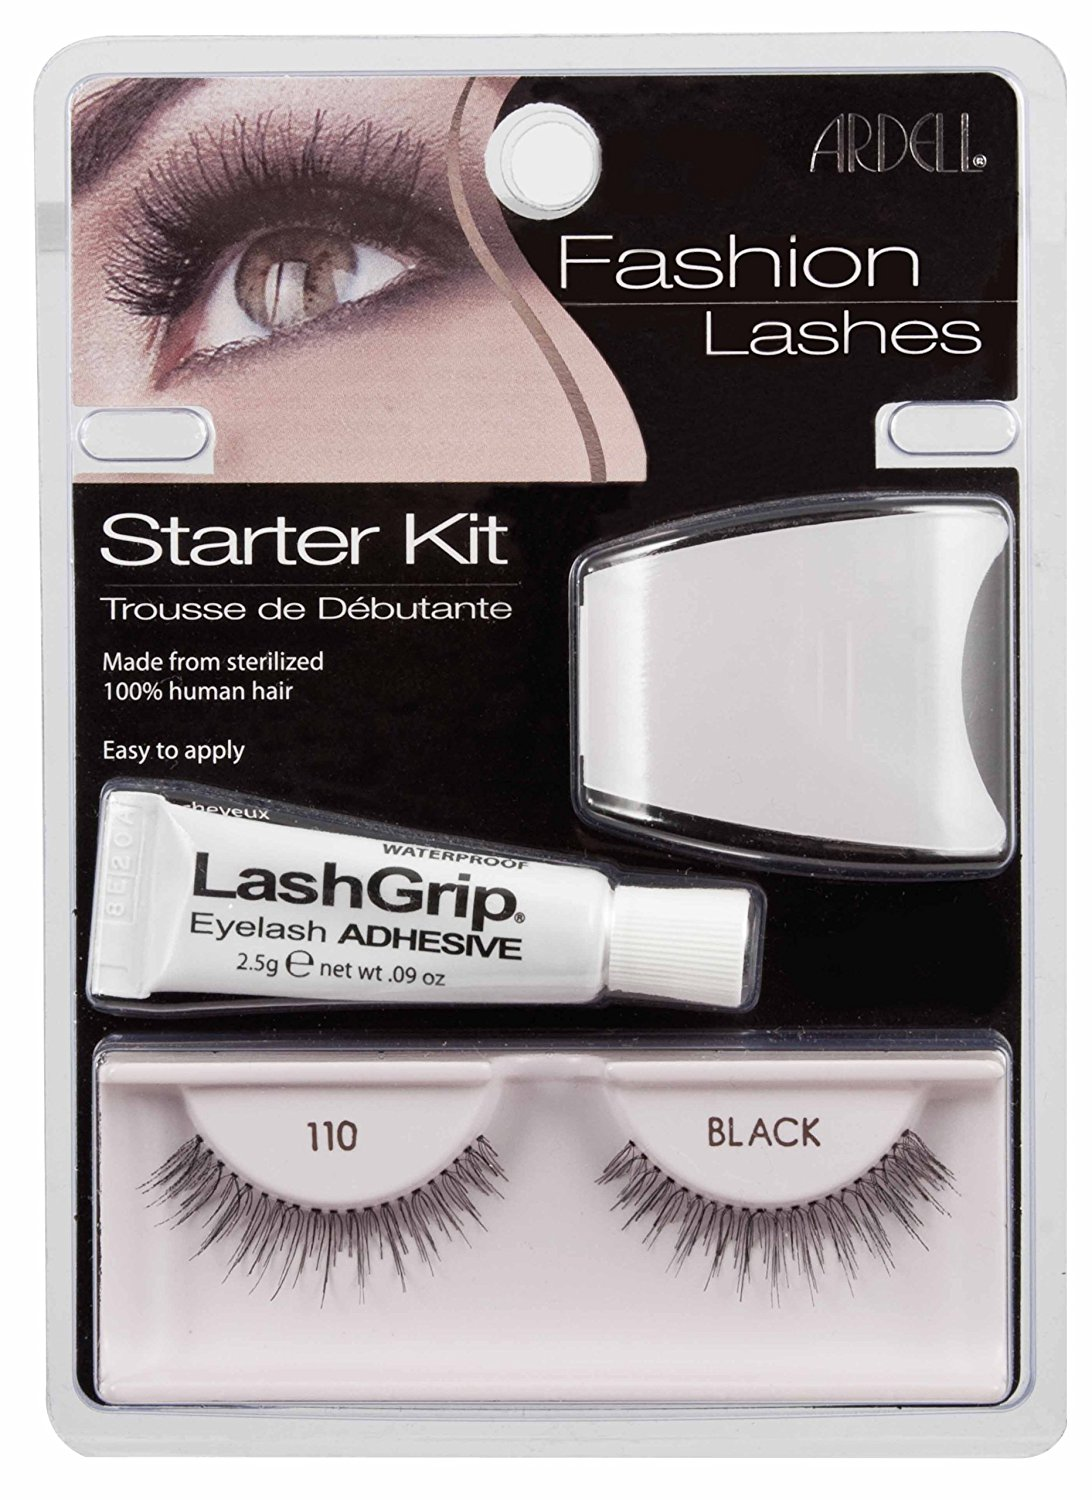 6fd96f5864e Buy Ardell Fashion Lashes False Eyelashes - #110 Black (Pack of 4 ...